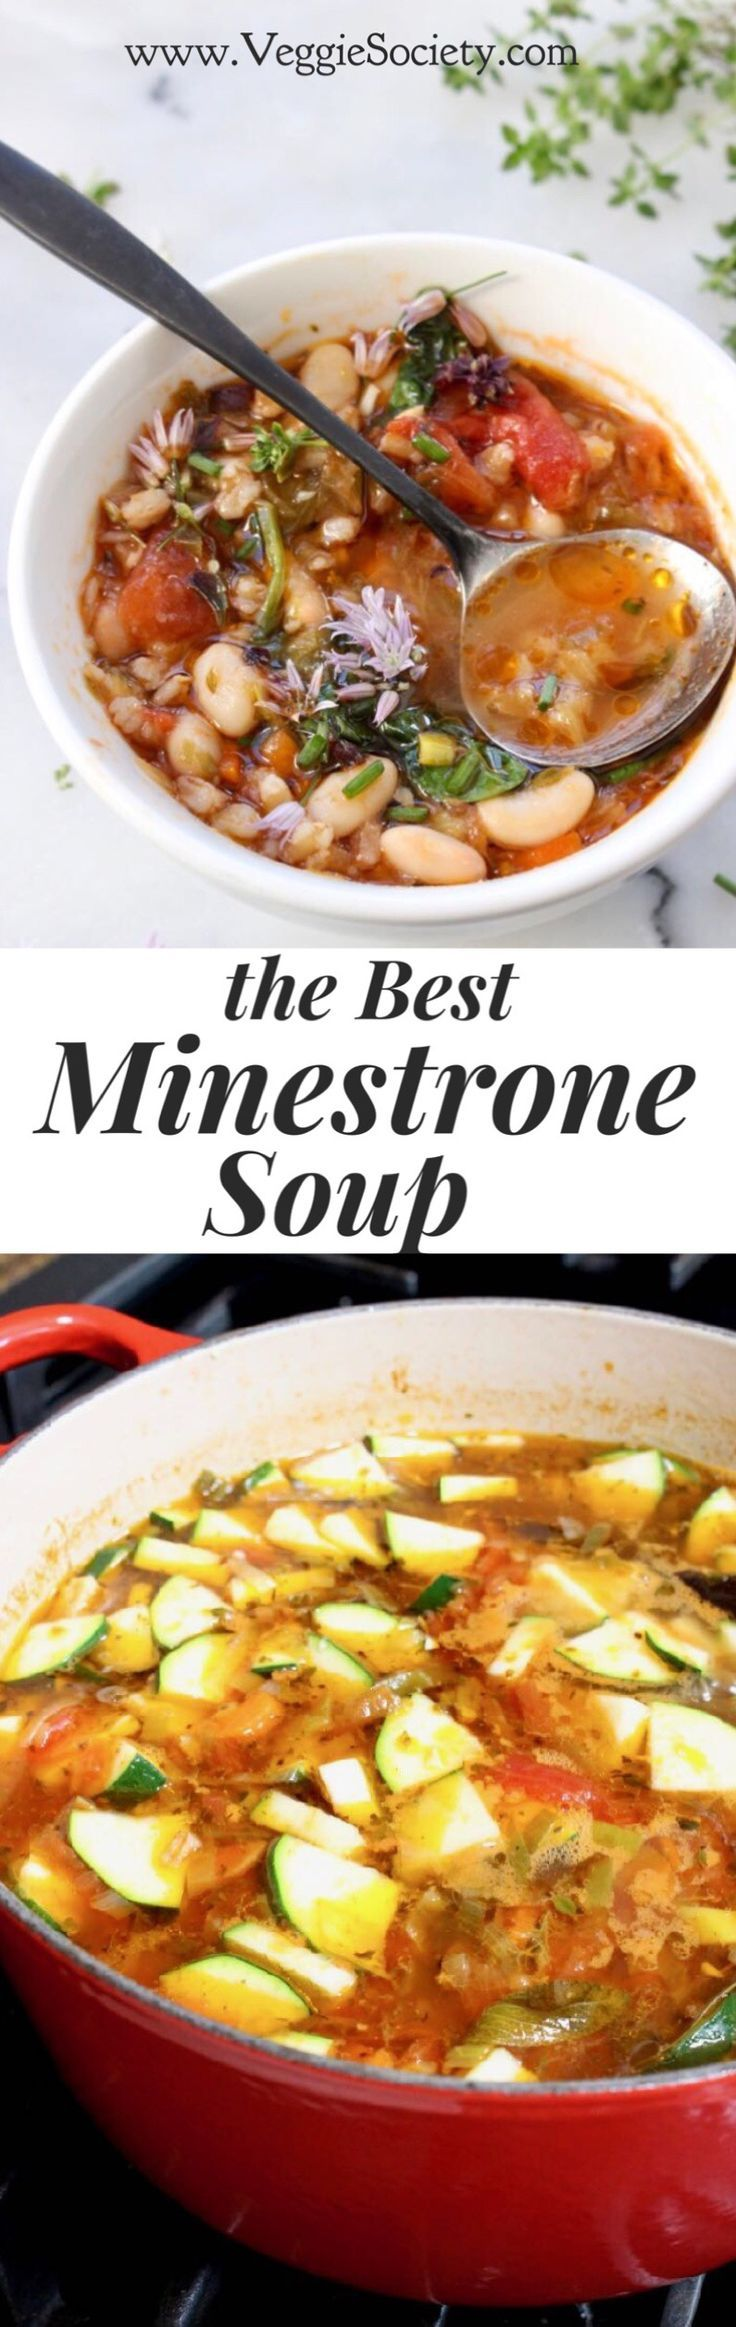 758 best comfort soup recipes images on pinterest cooking the best minestrone soup recipe ever quick easy to make healthy vegan healthy soup recipescomfort food forumfinder Image collections